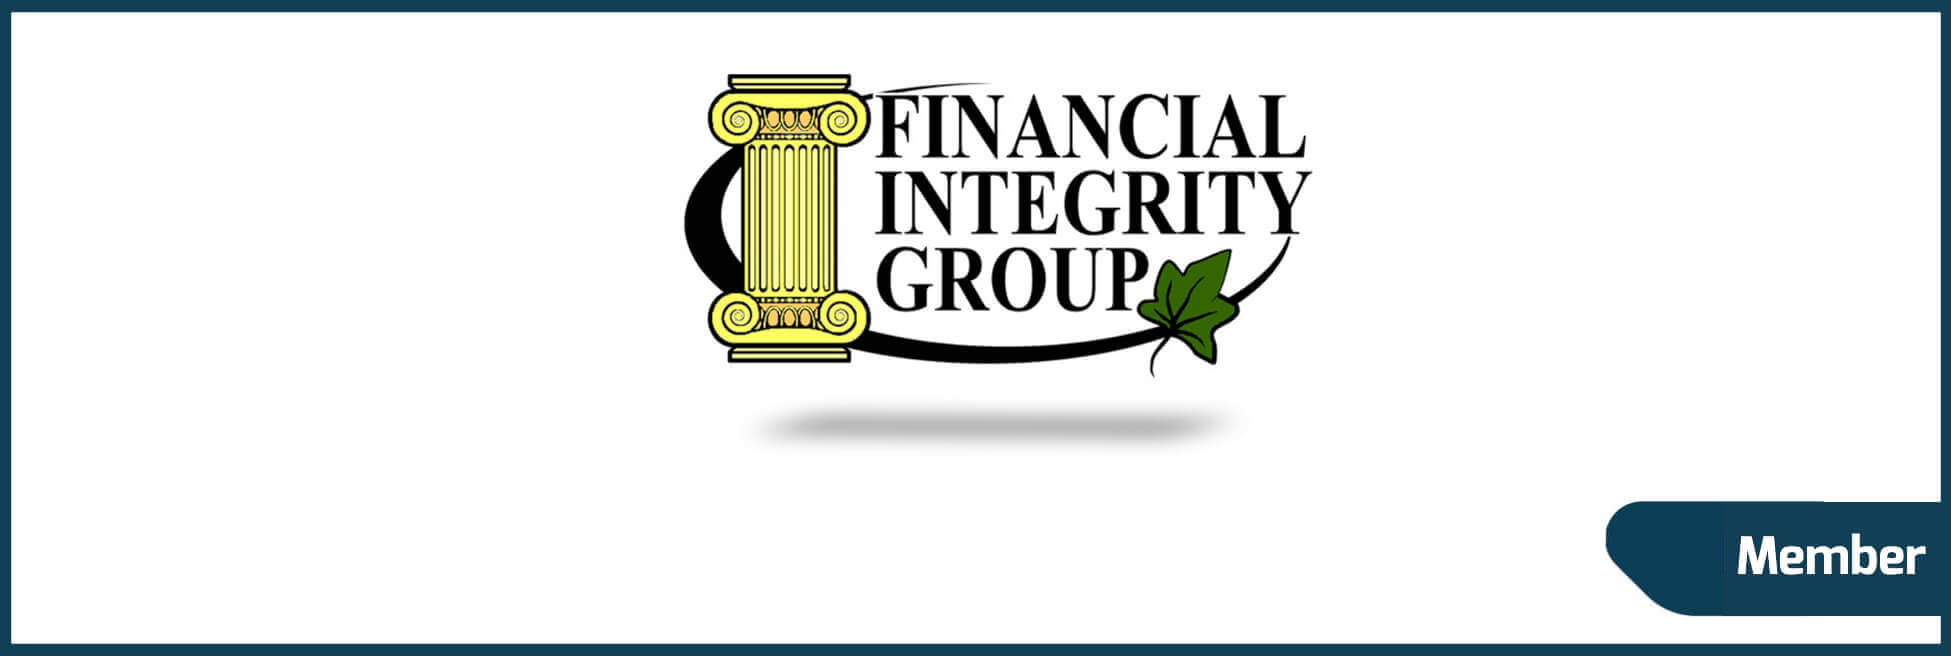 Financial Integrity Group